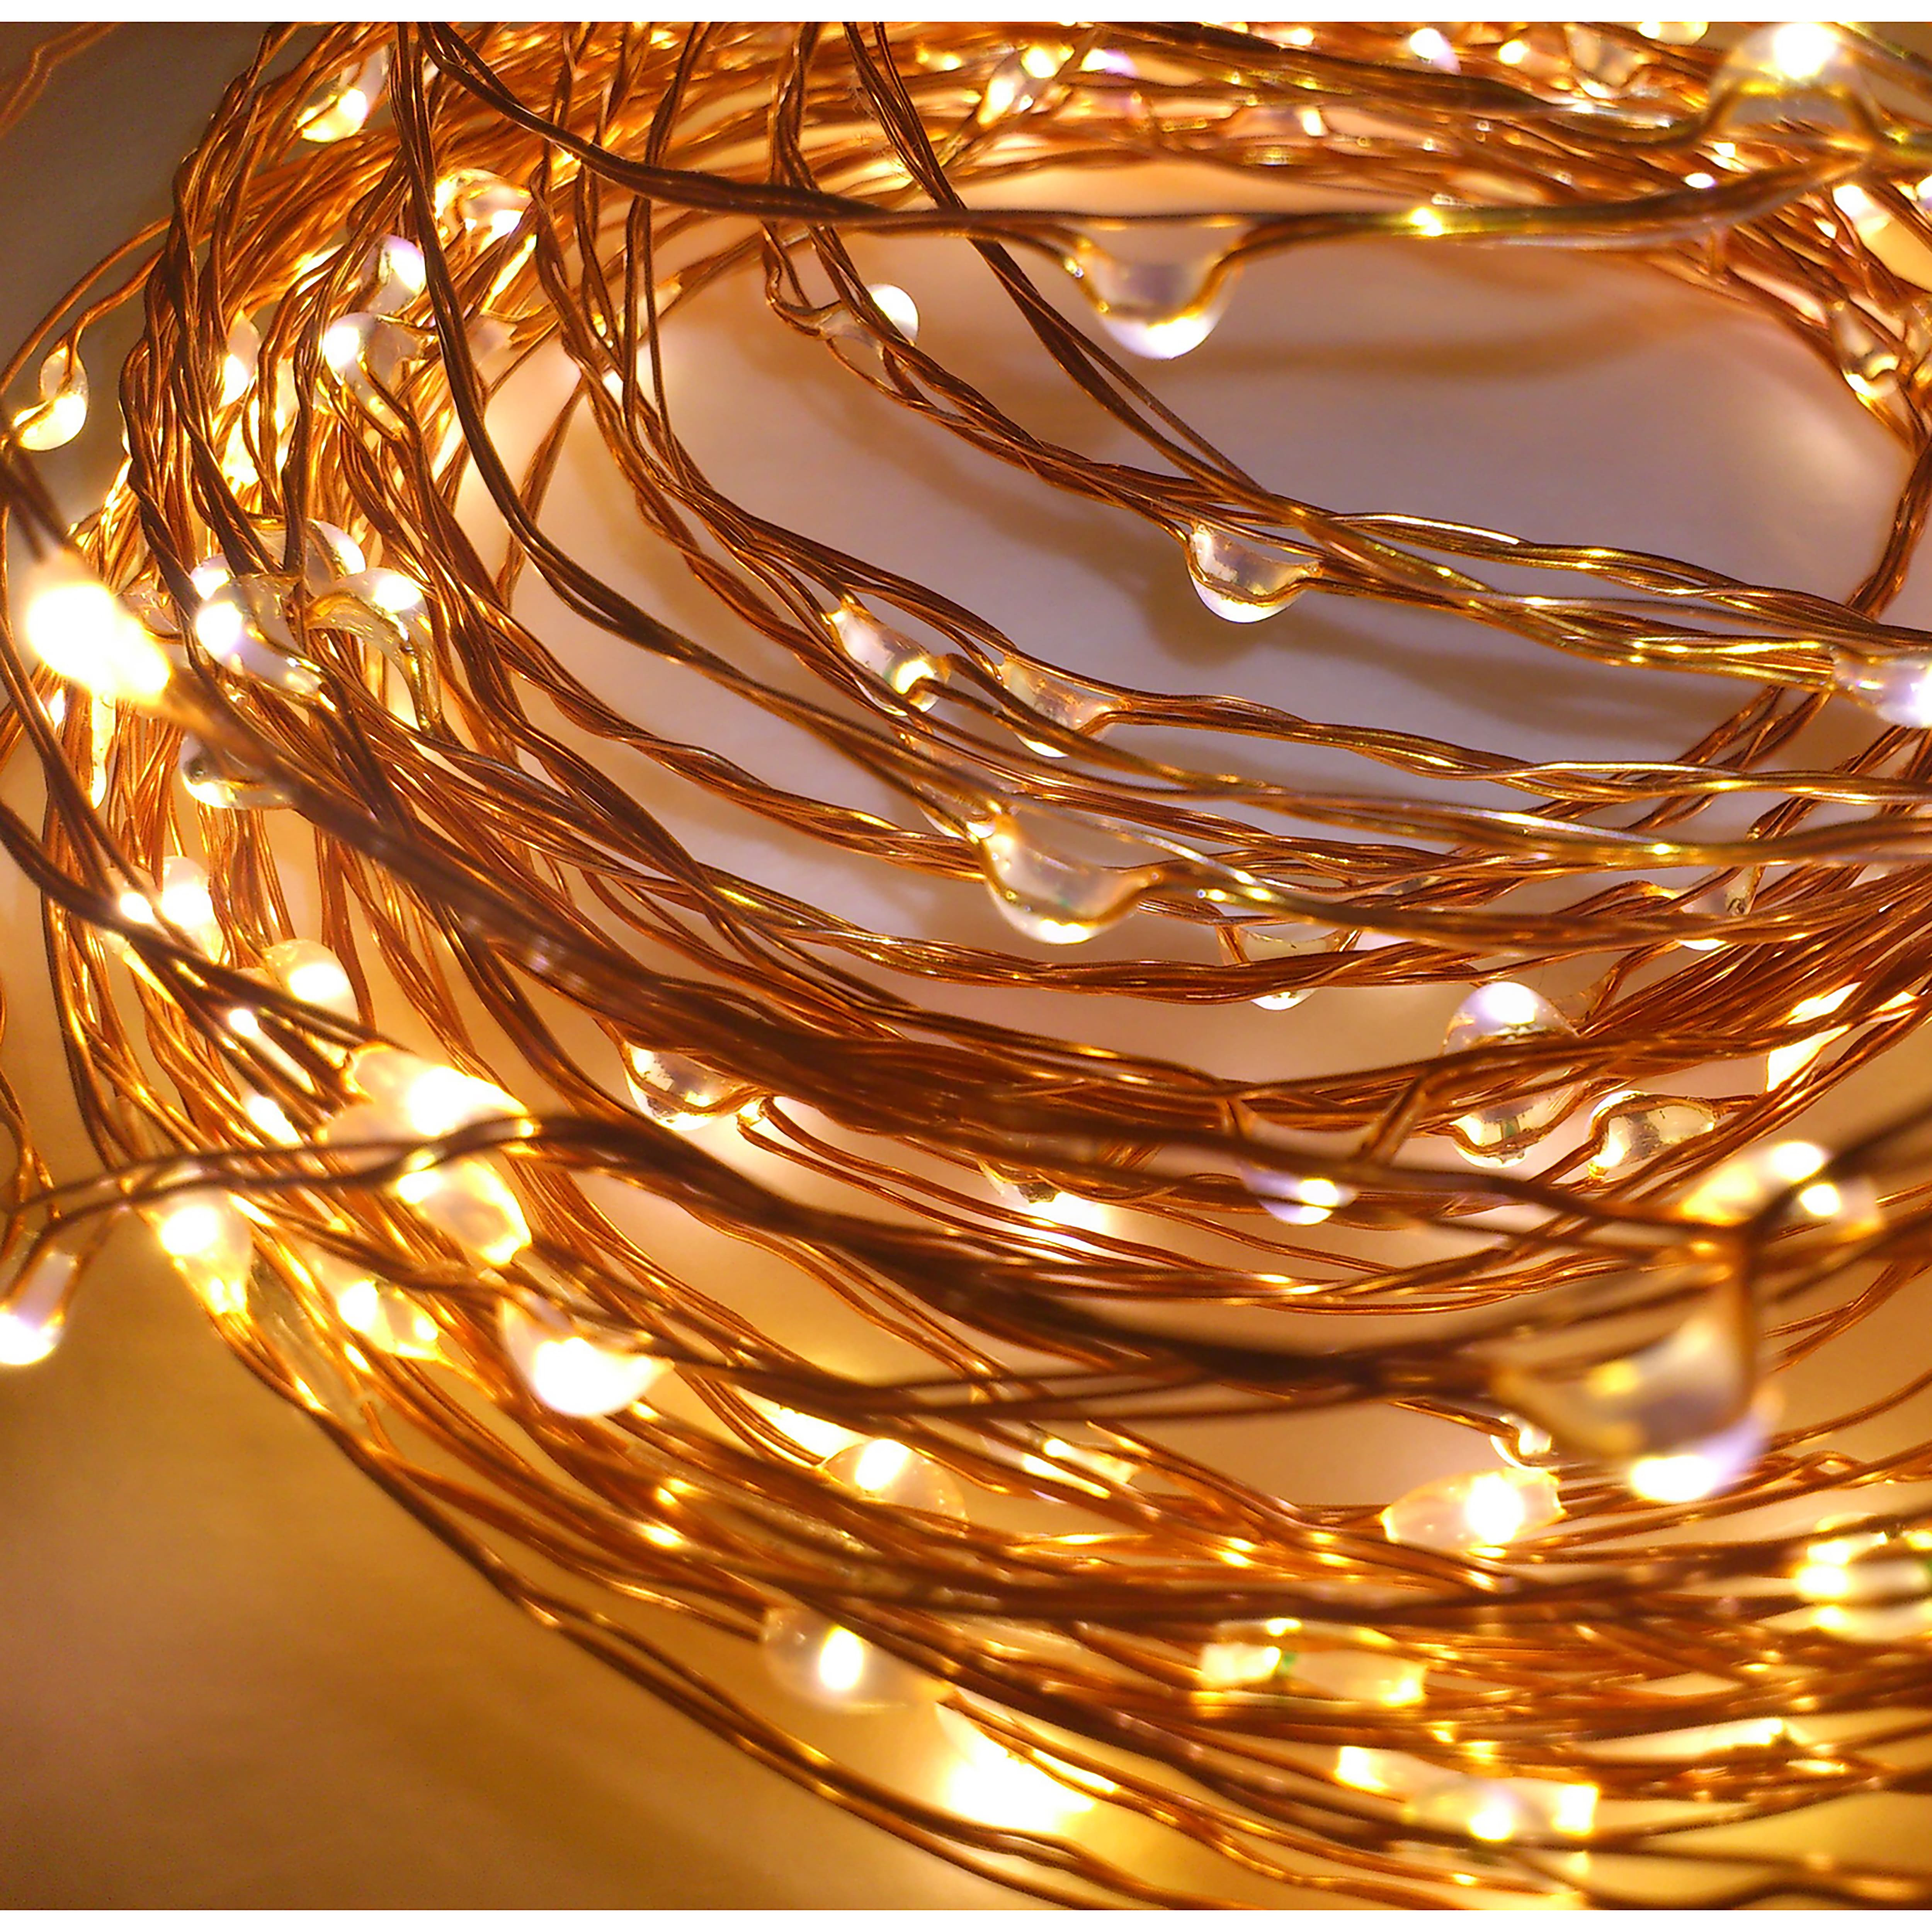 Find The Apothecary Company Copper Decorative Micro Led String Lights 5ft At Michaels